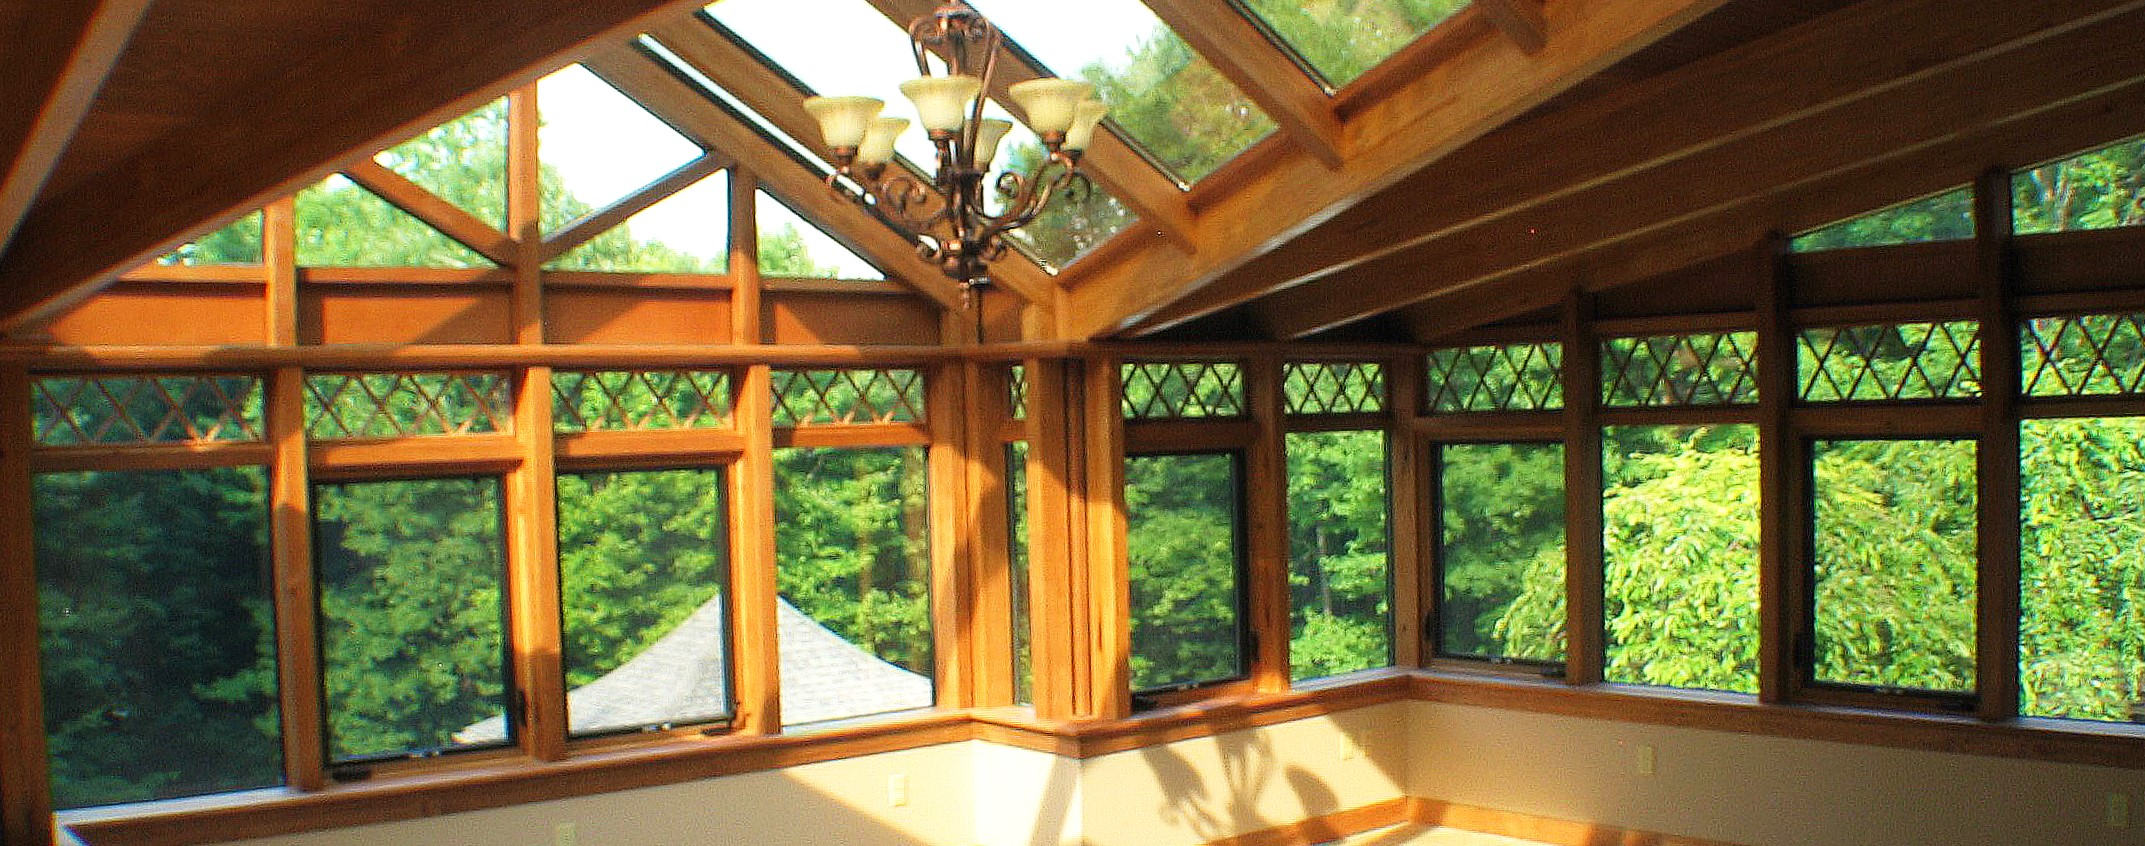 did you know that solar innovations provides wood products in addition to glass - Innovative Wood Beam Ceiling